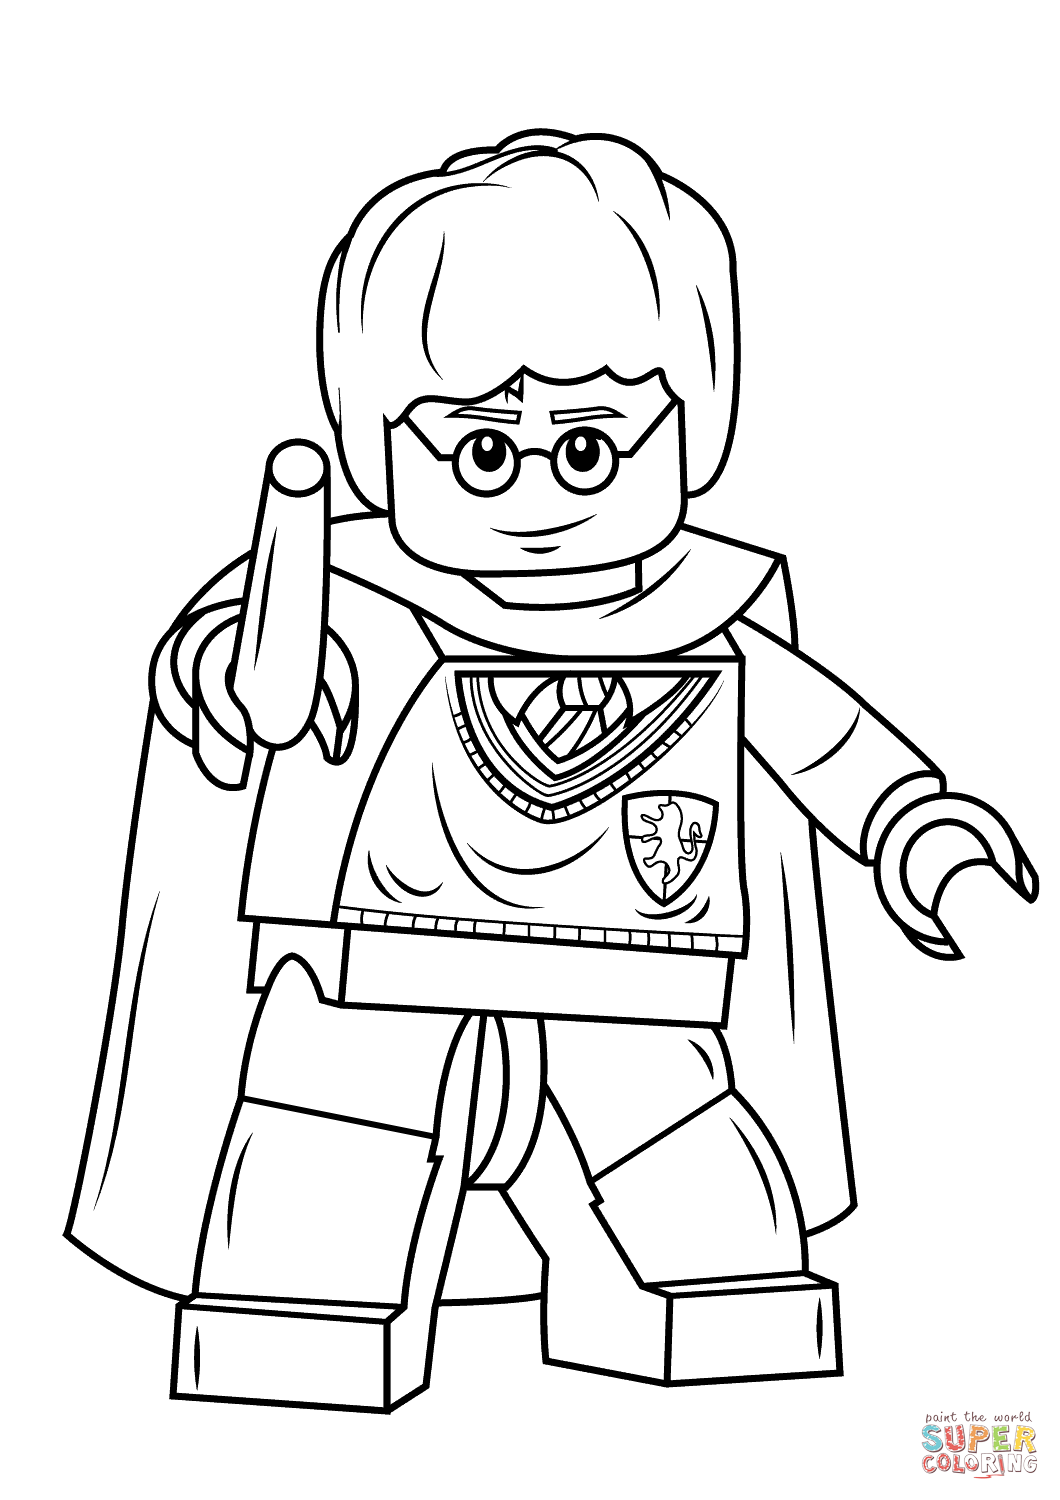 harry potter coloring pages pdf | Lego Harry Potter With Wand Coloring Page | Free Printable ...